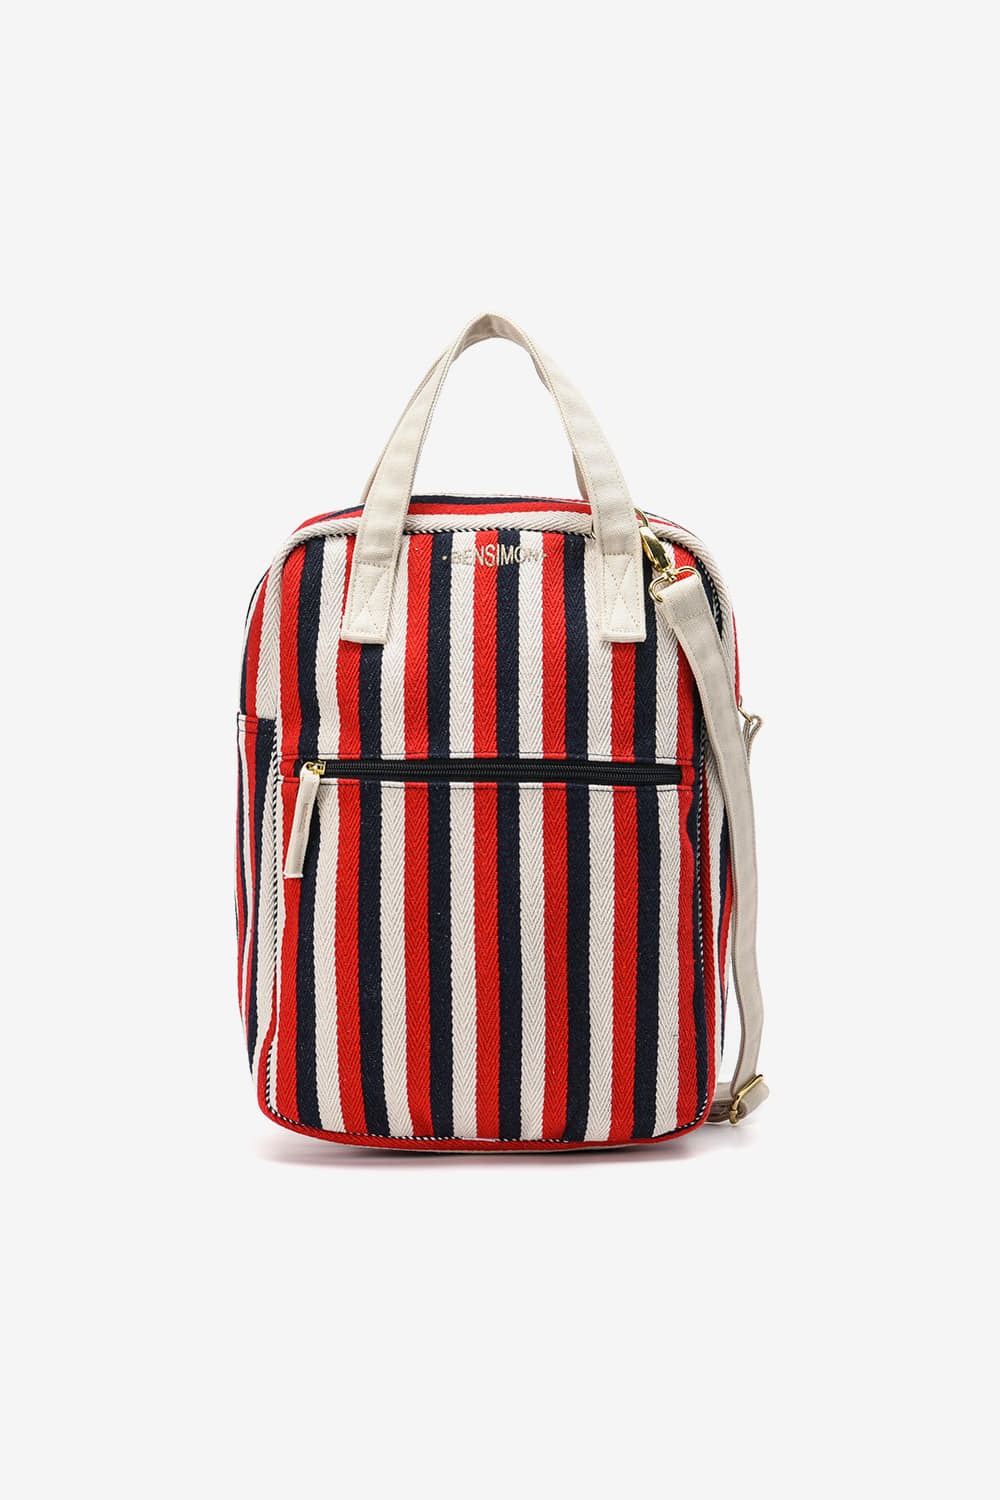 [Stripe Transat] Shopper Bag_RedBS9STB104